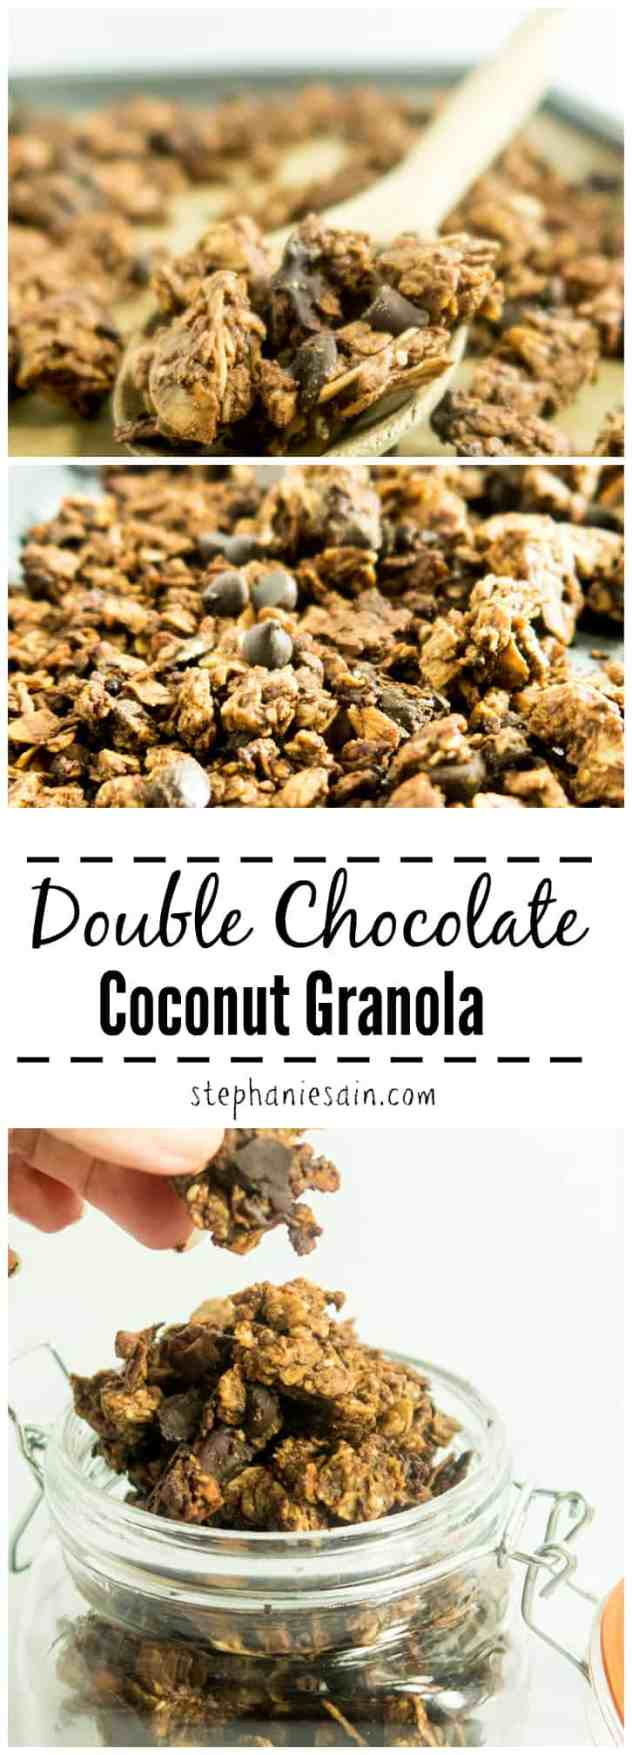 Double Chocolate Coconut Granola is loaded with intense chocolatey flavors and coconut flakes. Great as a healthy tasty snack or breakfast and it also a good topping for yogurt or smoothies. Gluten Free with Vegan Option.